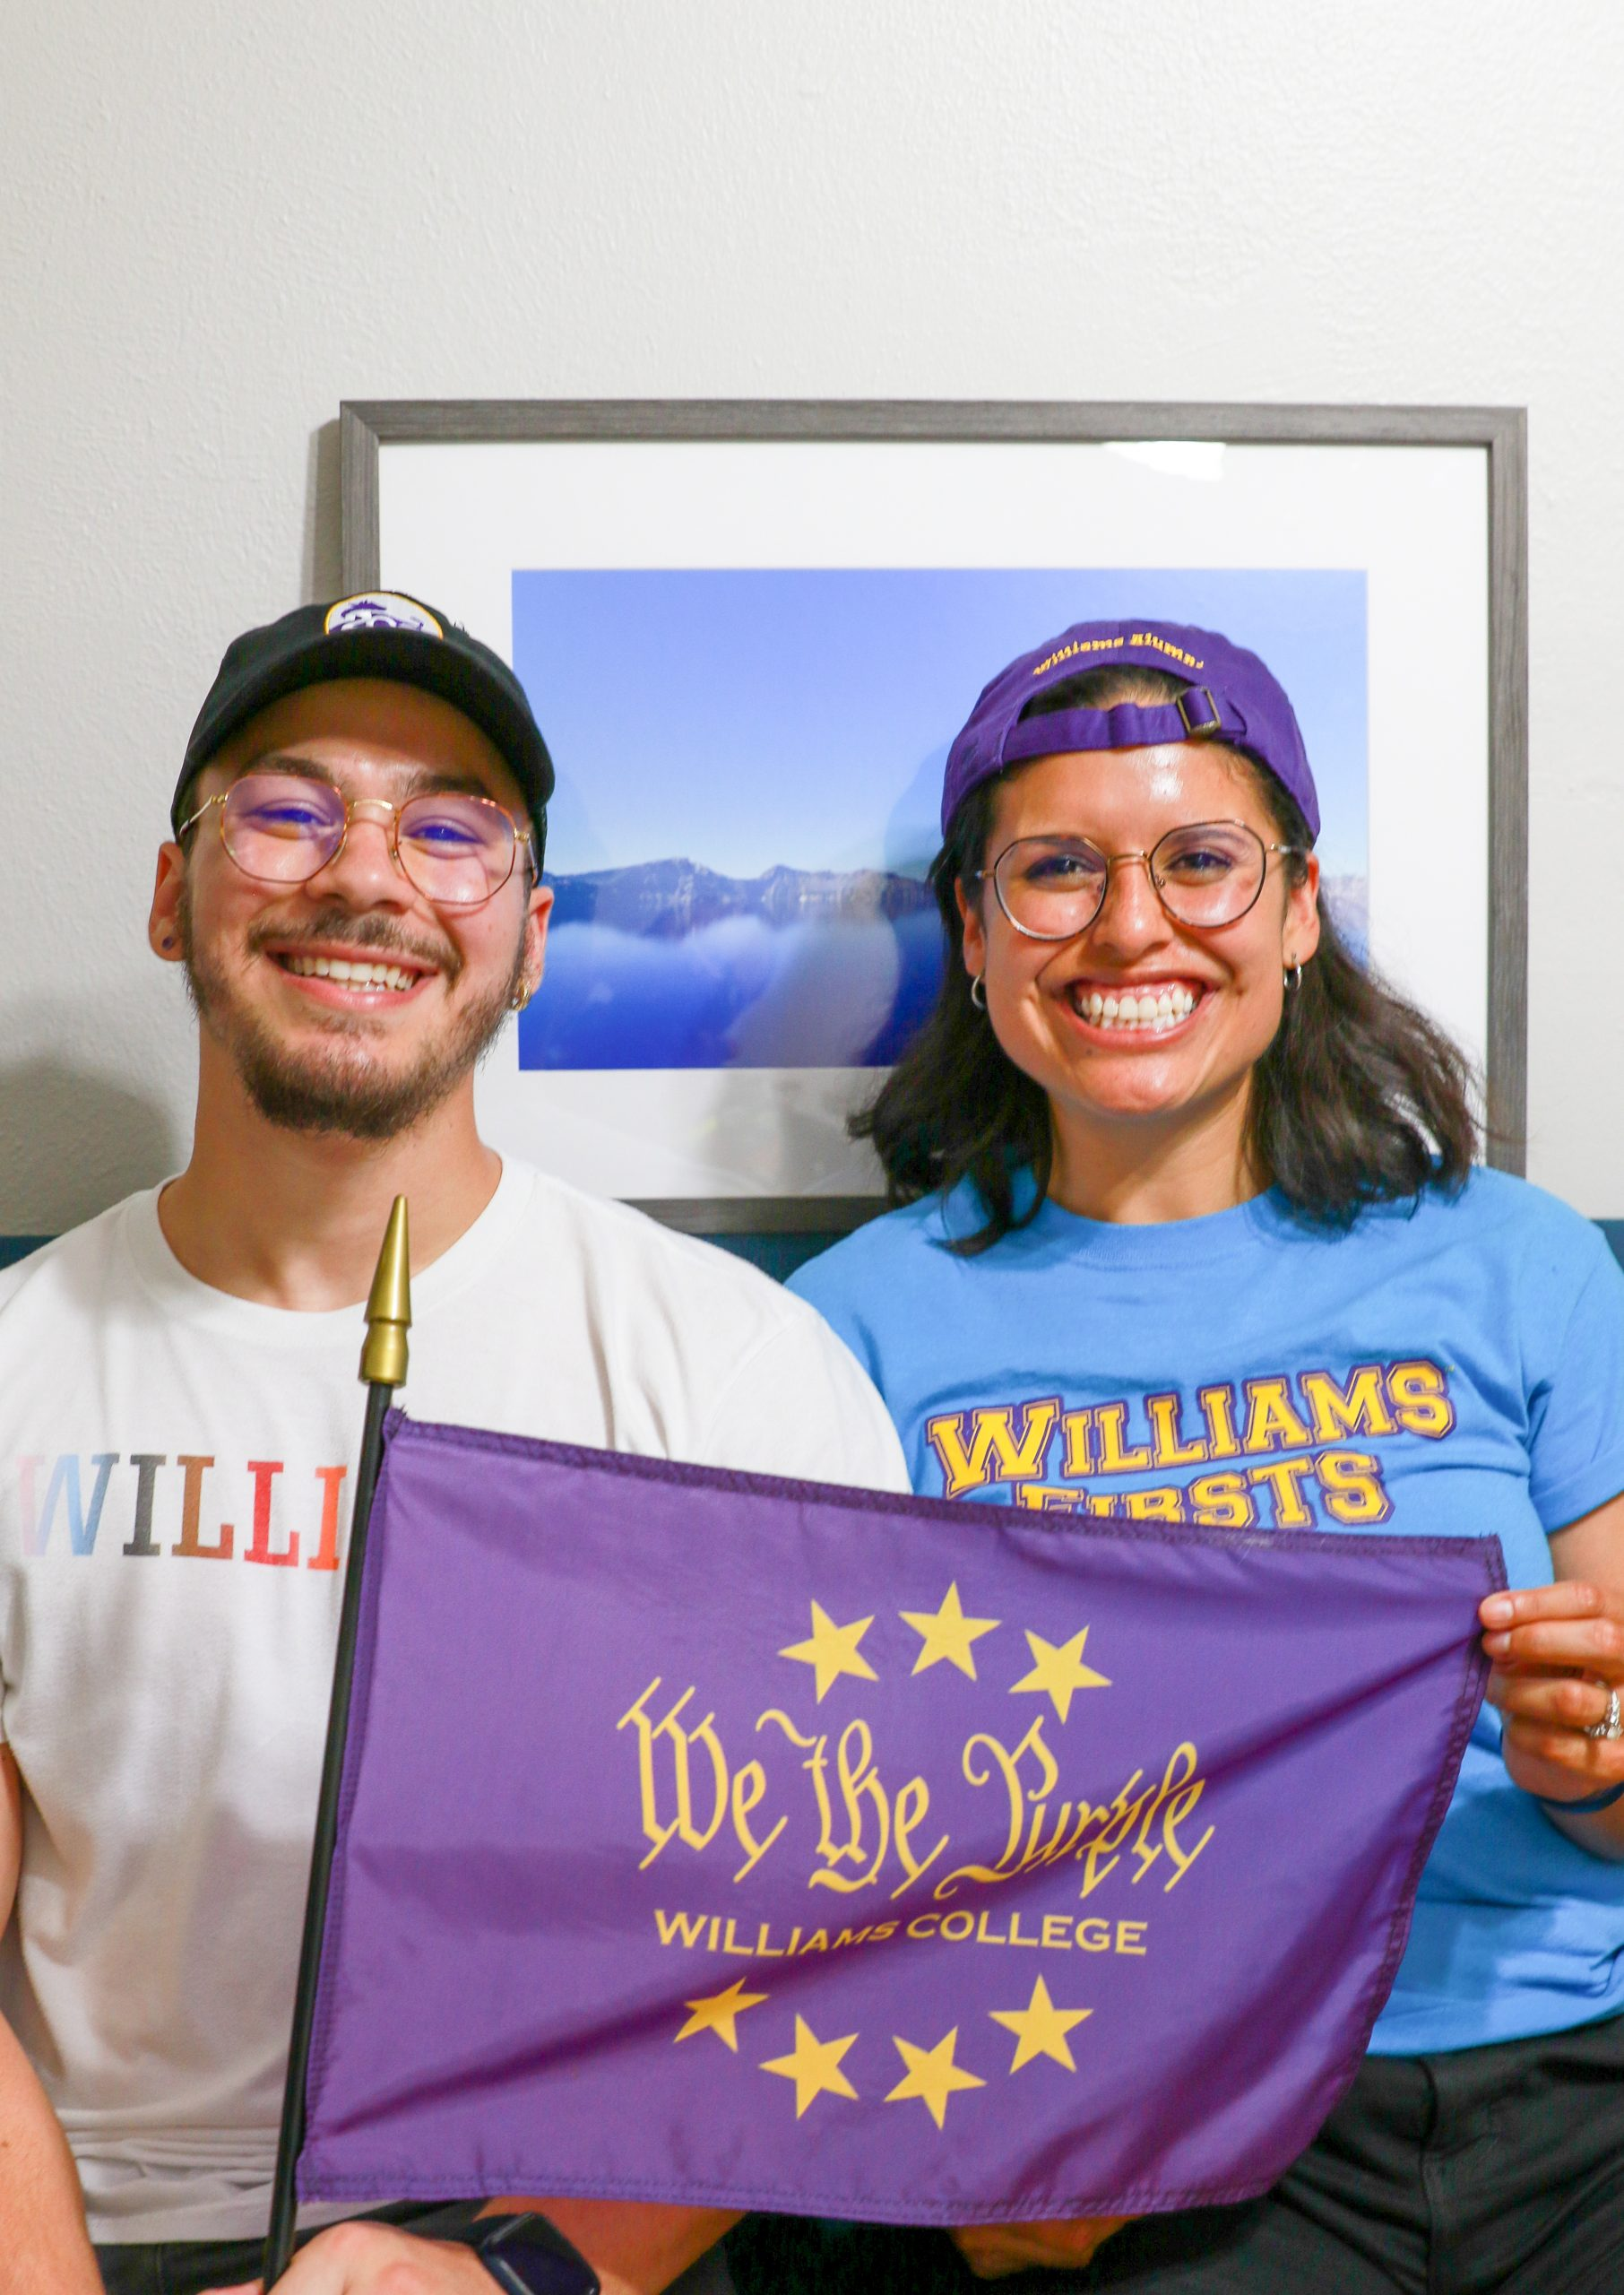 A portrait photograph of Kevin and Alejandra sitting down on a couch, holding a purple 'We the Purple' flag, with a frame of a landscape photo of a lake in the background. Kevin is on the left wearing a black baseball cap with a logo of the bicentennial cow 200th and is wearing a white shirt that has Williams in pride colors. Alejandra is sitting to the right wearing a purple baseball cap backwards and is wearing a blue shirt that reads with yellow text as Williams Firsts.